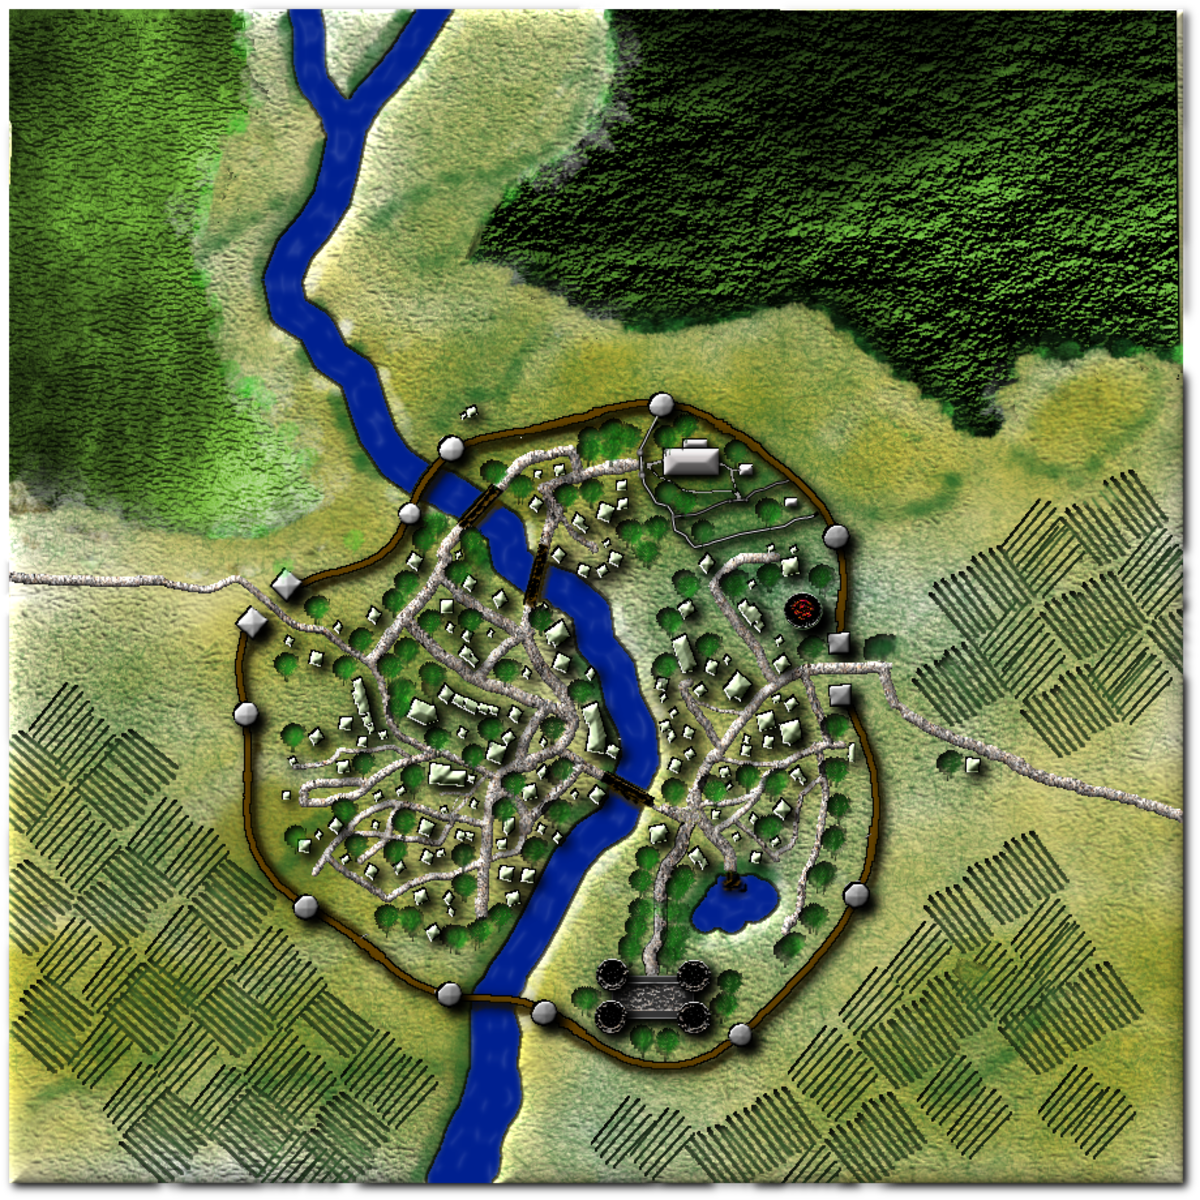 Creating Fantasy City Maps for Roleplaying Games With GIMP 2.8 (2.10.12)